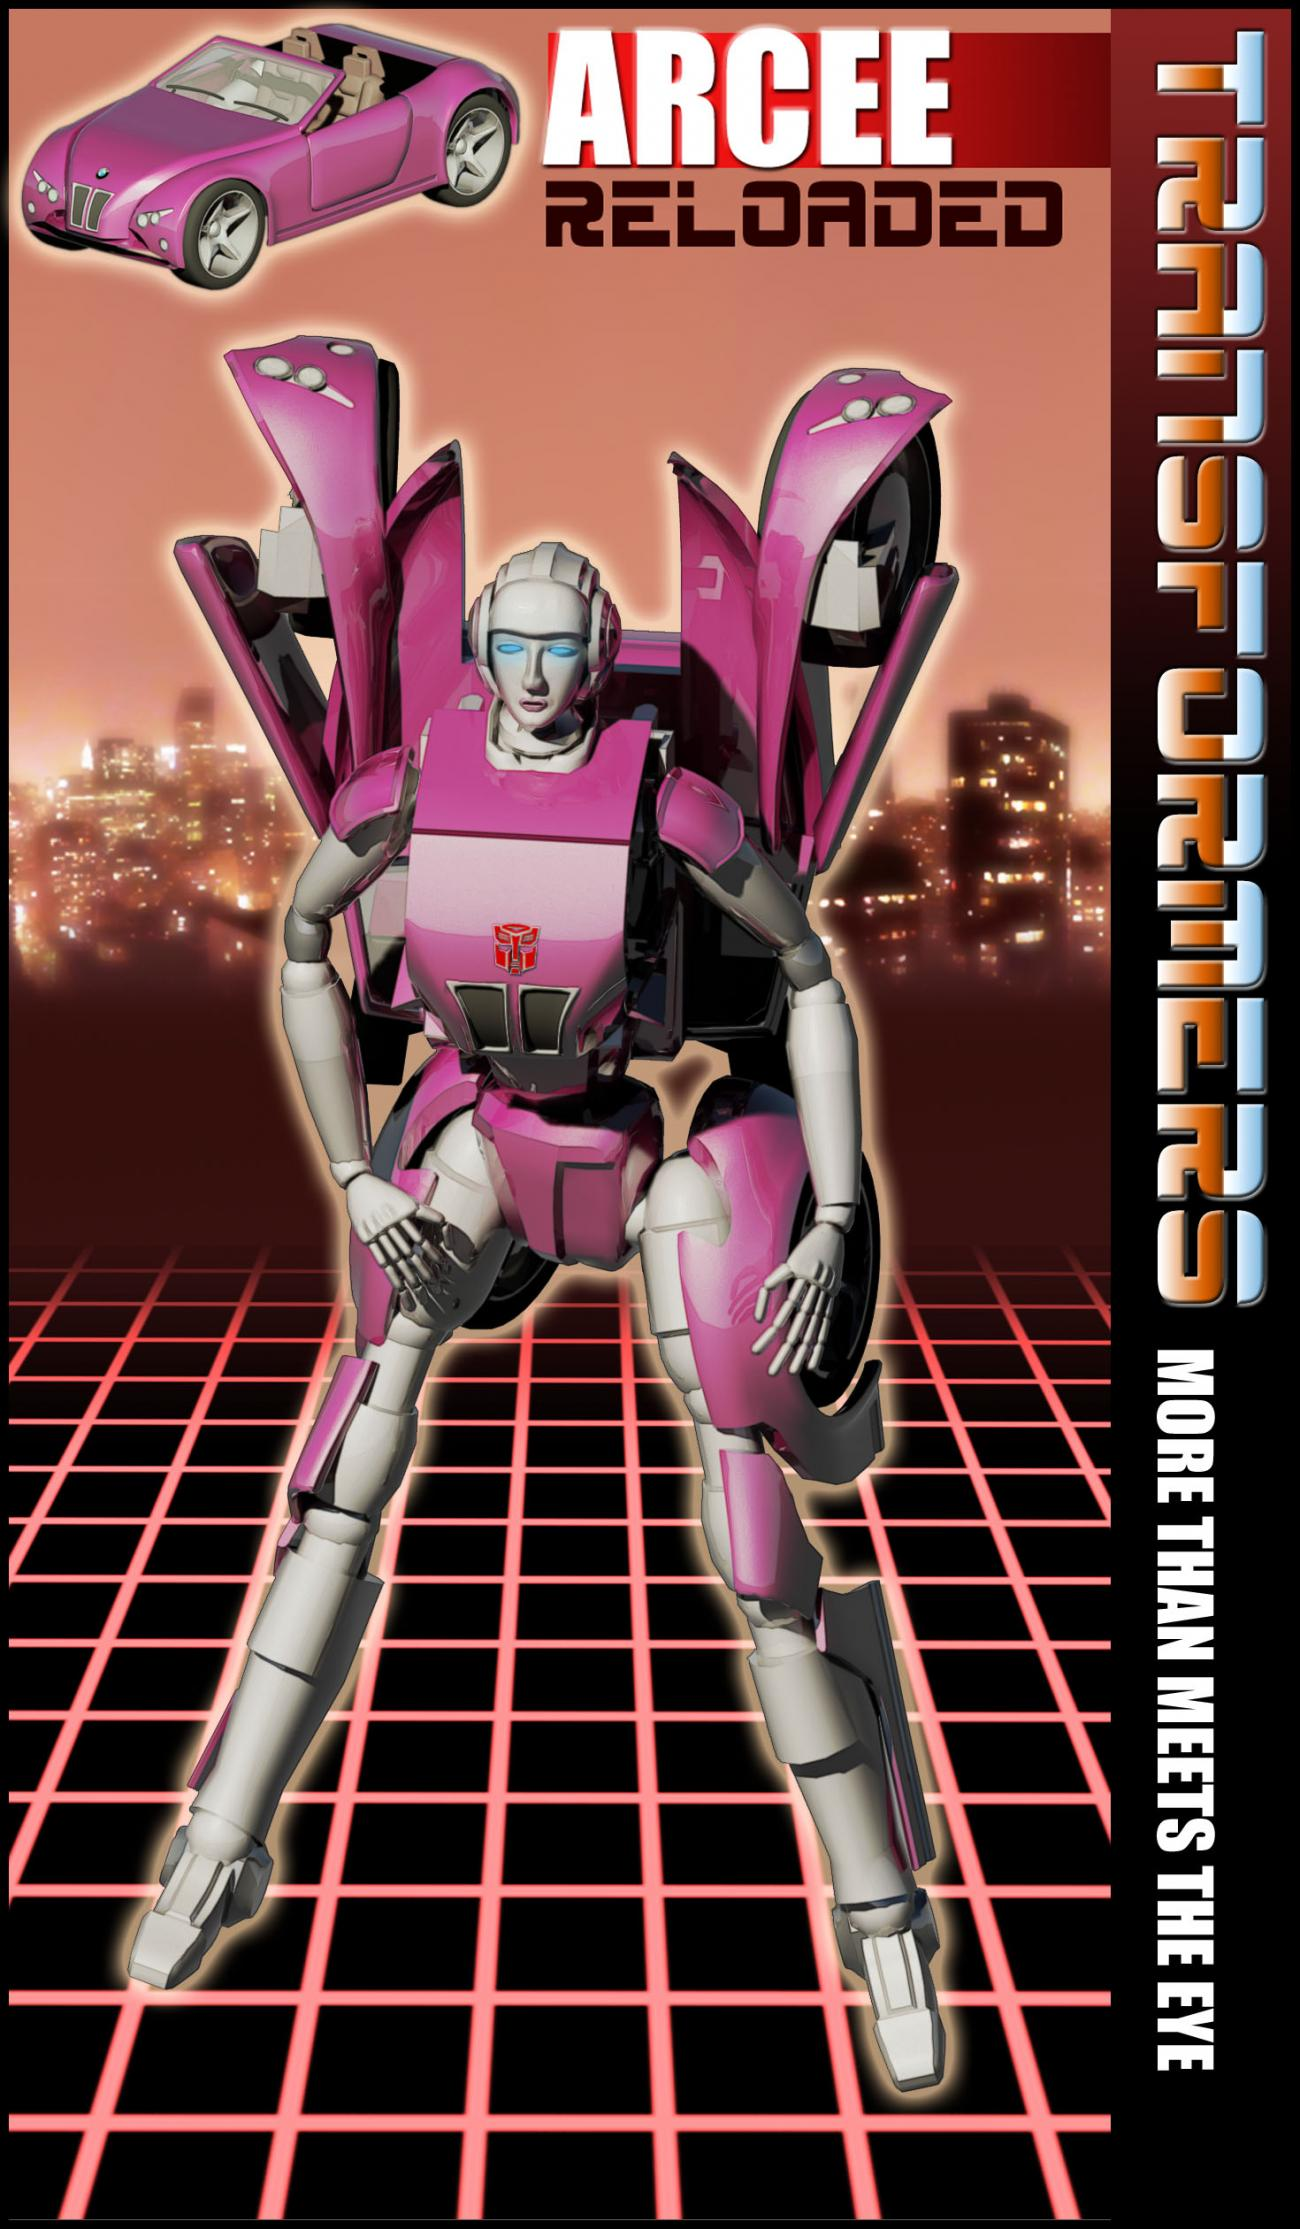 Arcee of Autobots Reloaded 2010